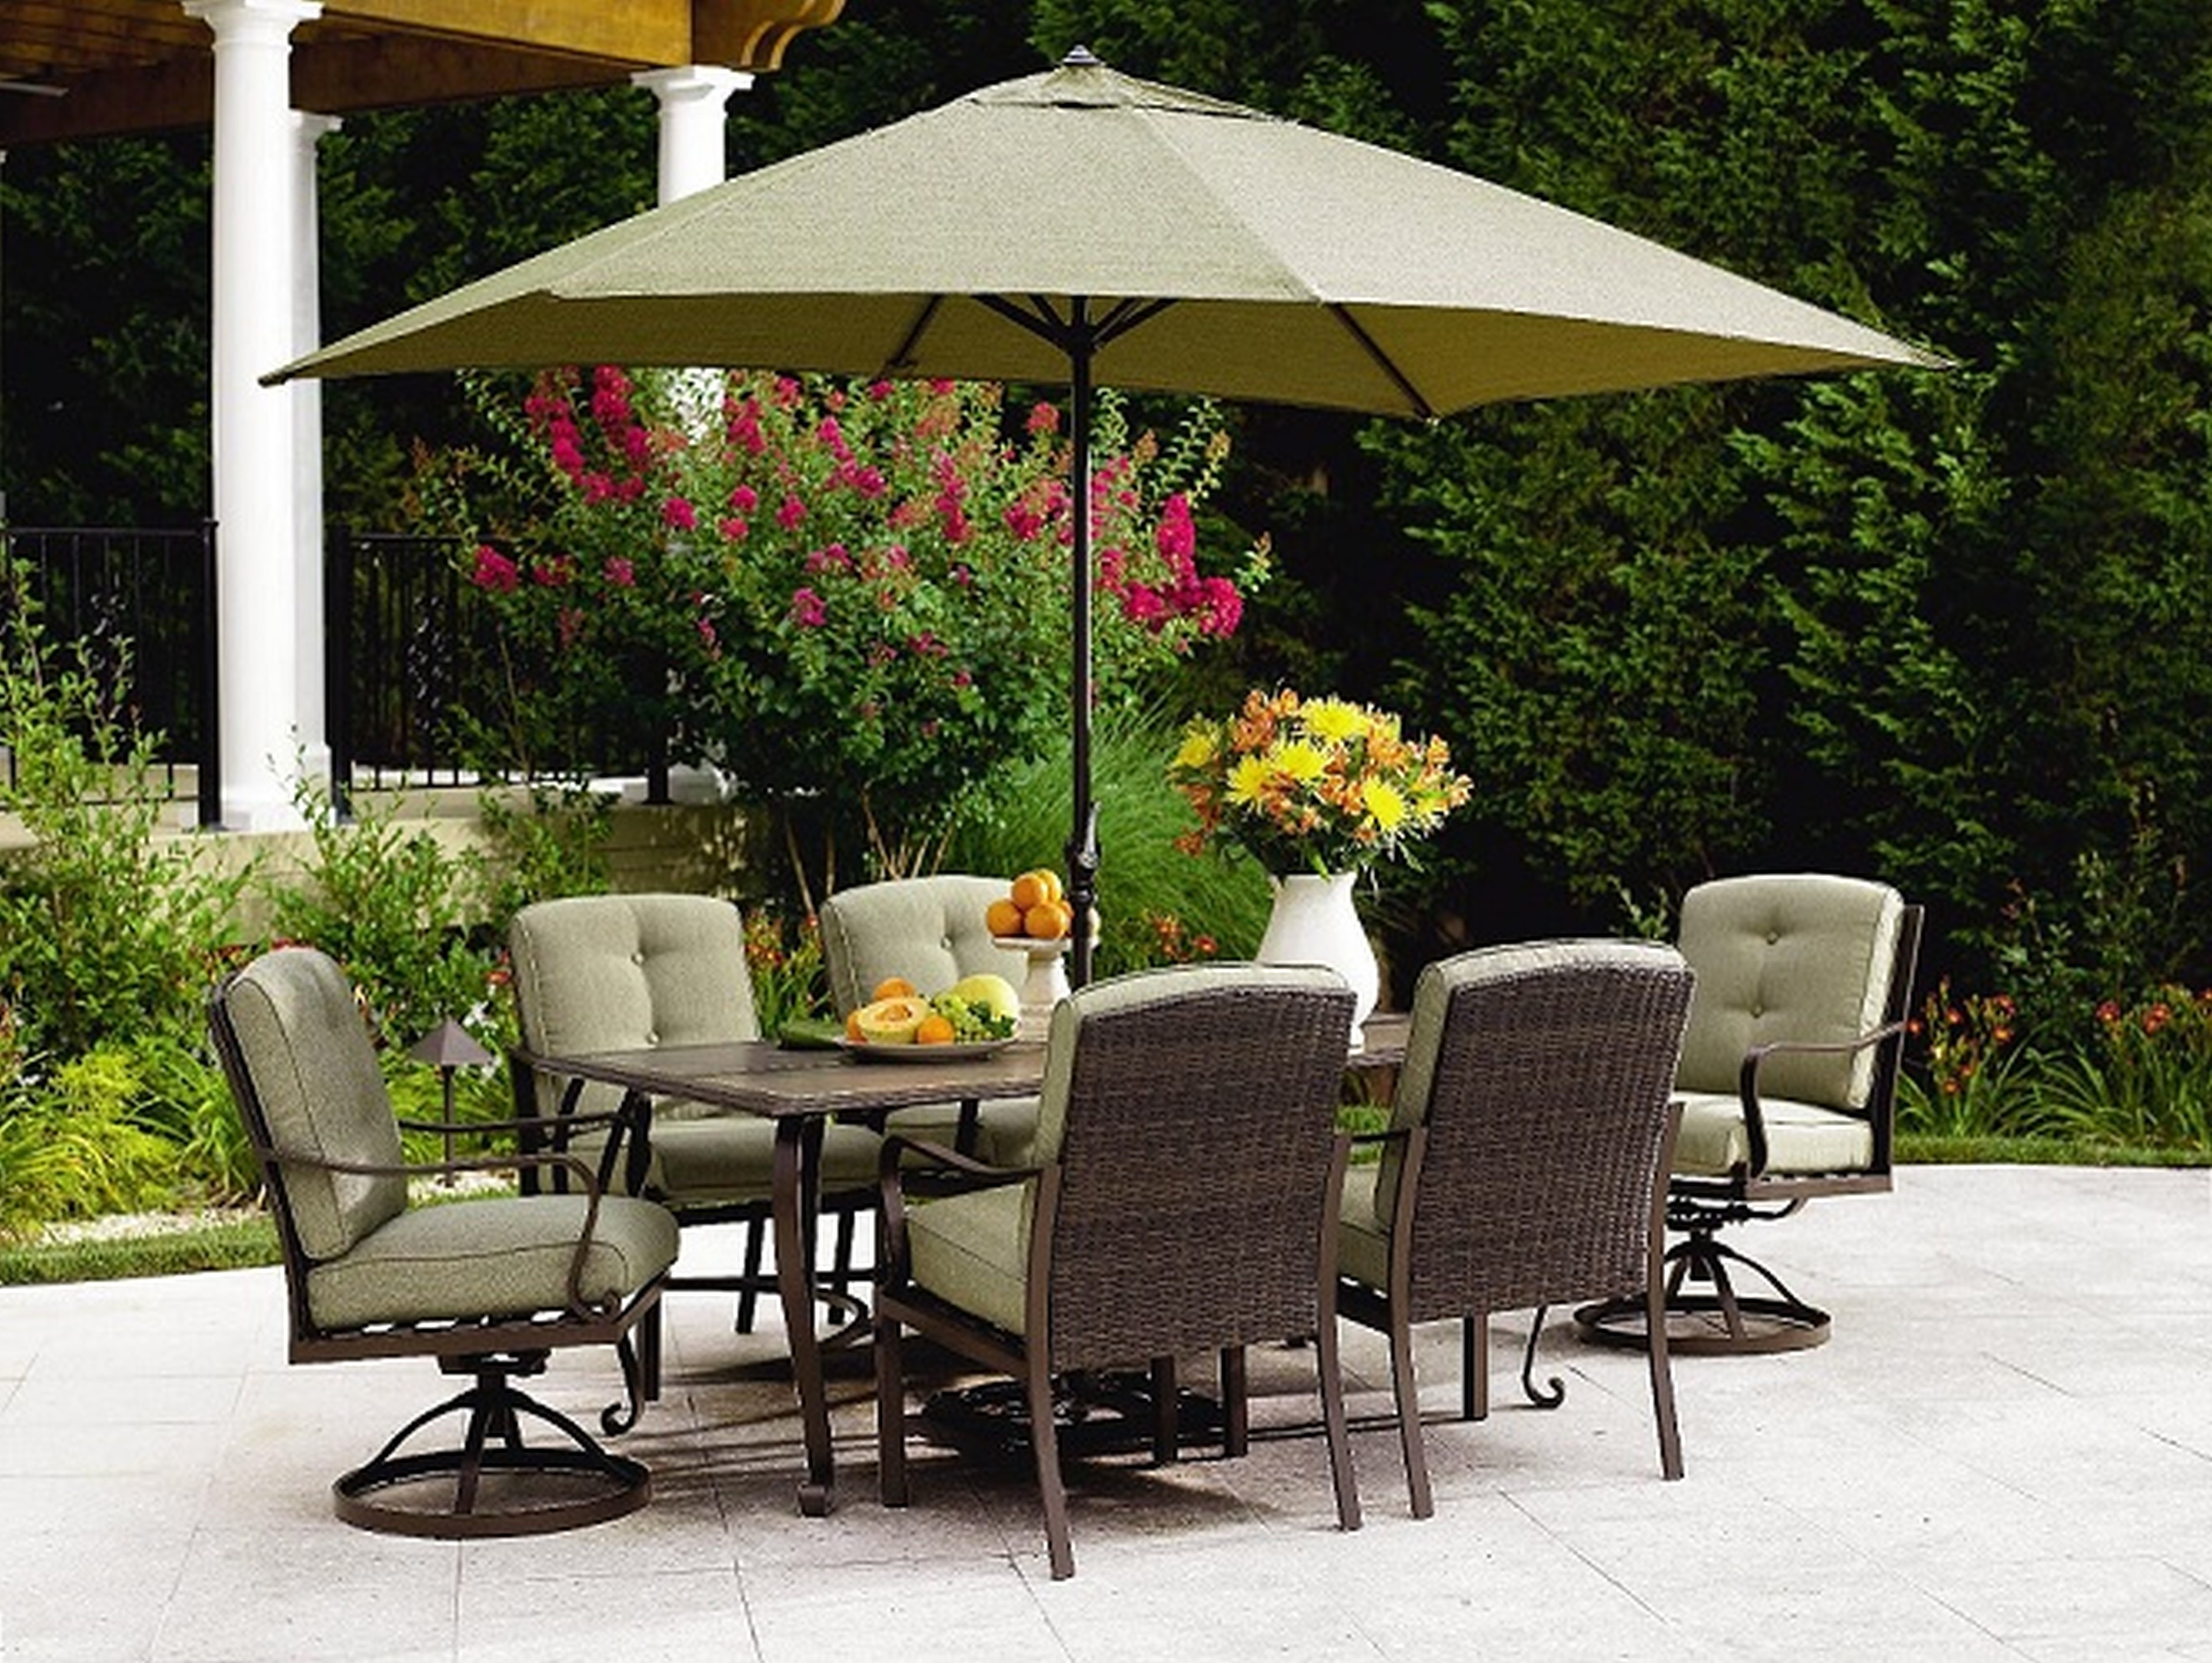 Preferred Patio Furniture With Umbrellas Intended For 38 Small Patio Table With Umbrella, Furniture: Patio Chairs That (View 18 of 20)